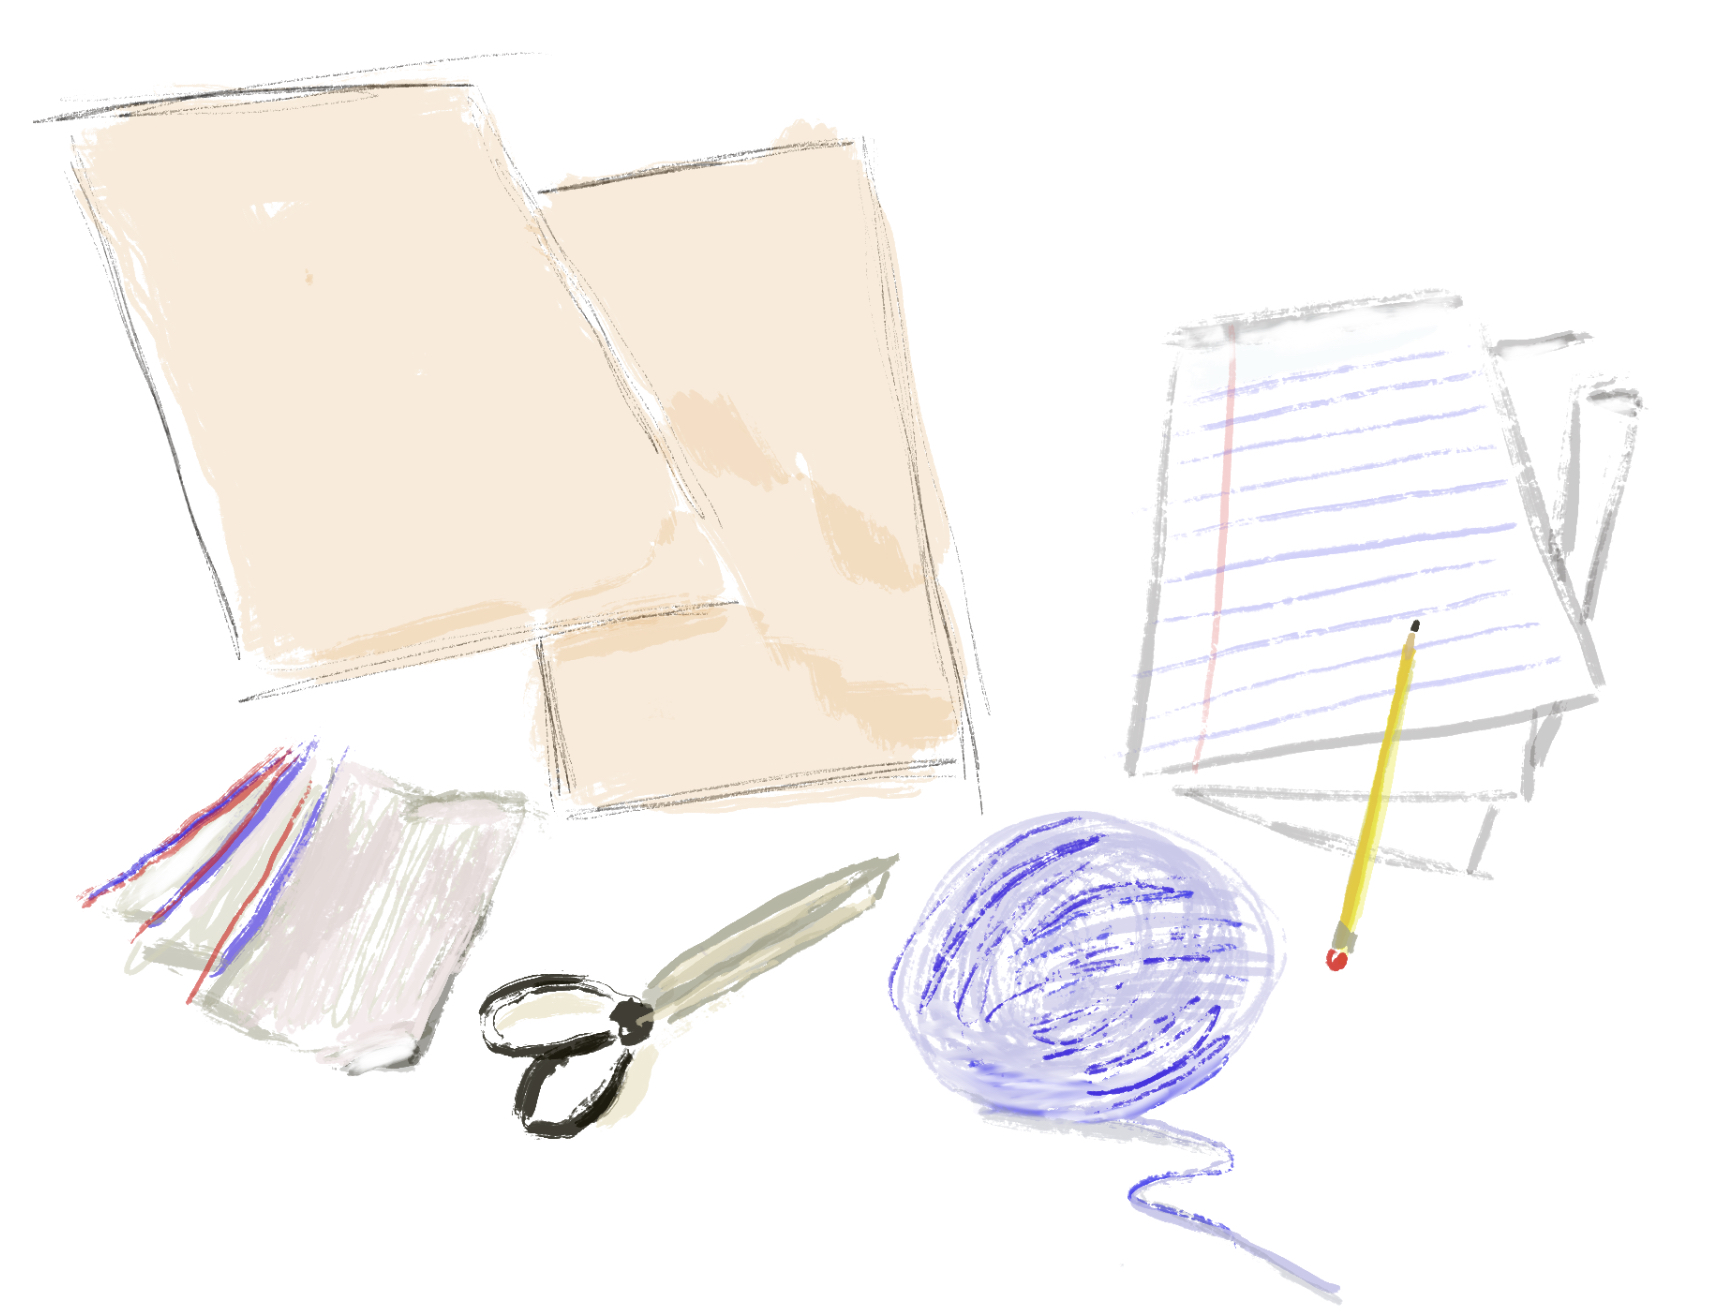 drawing of the supplies